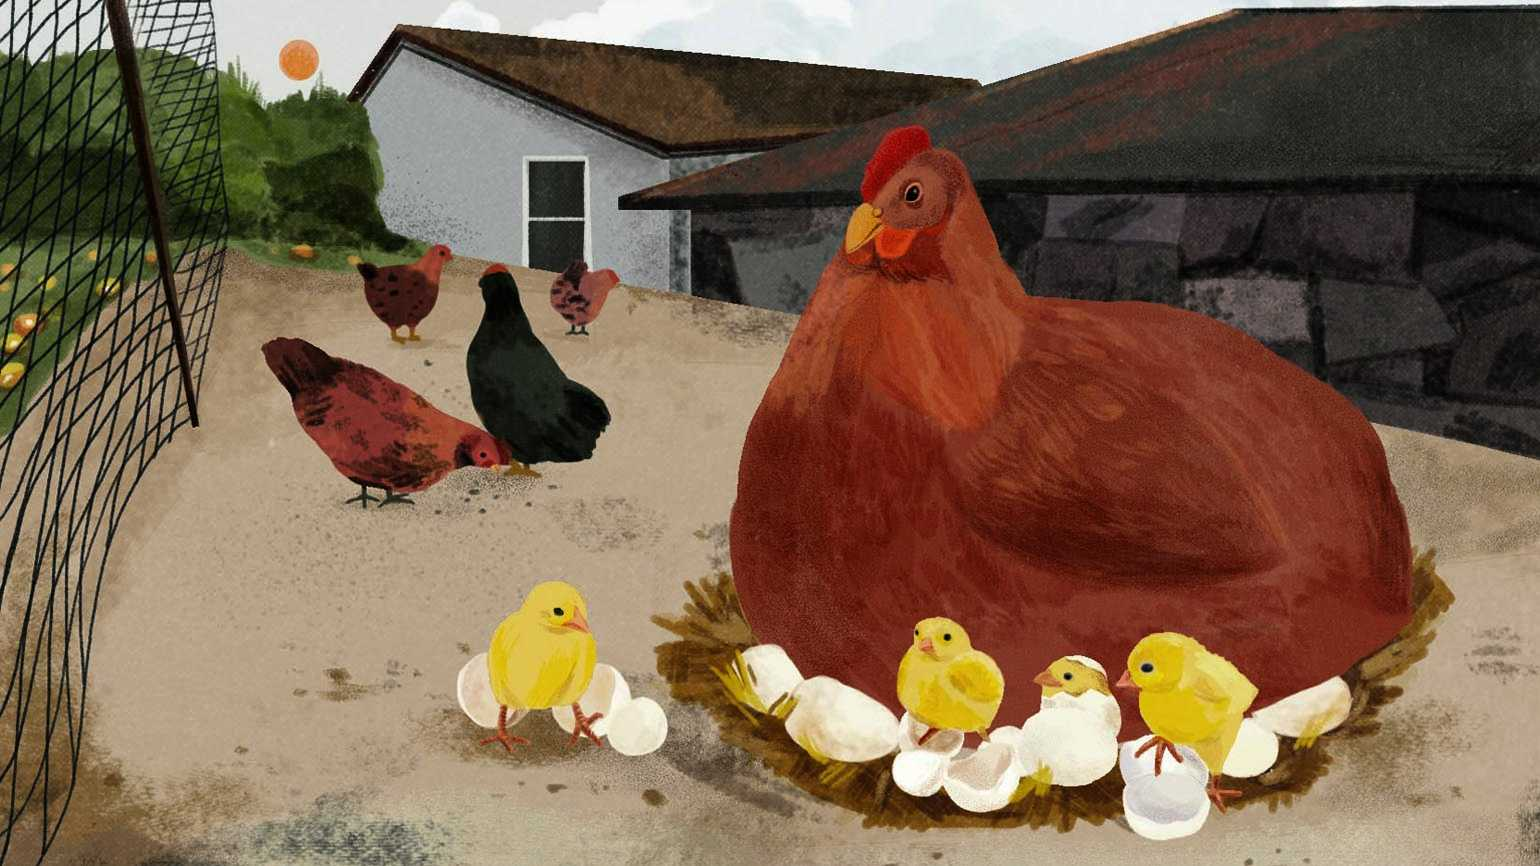 An artist's rendering of a hen with chicks around her.